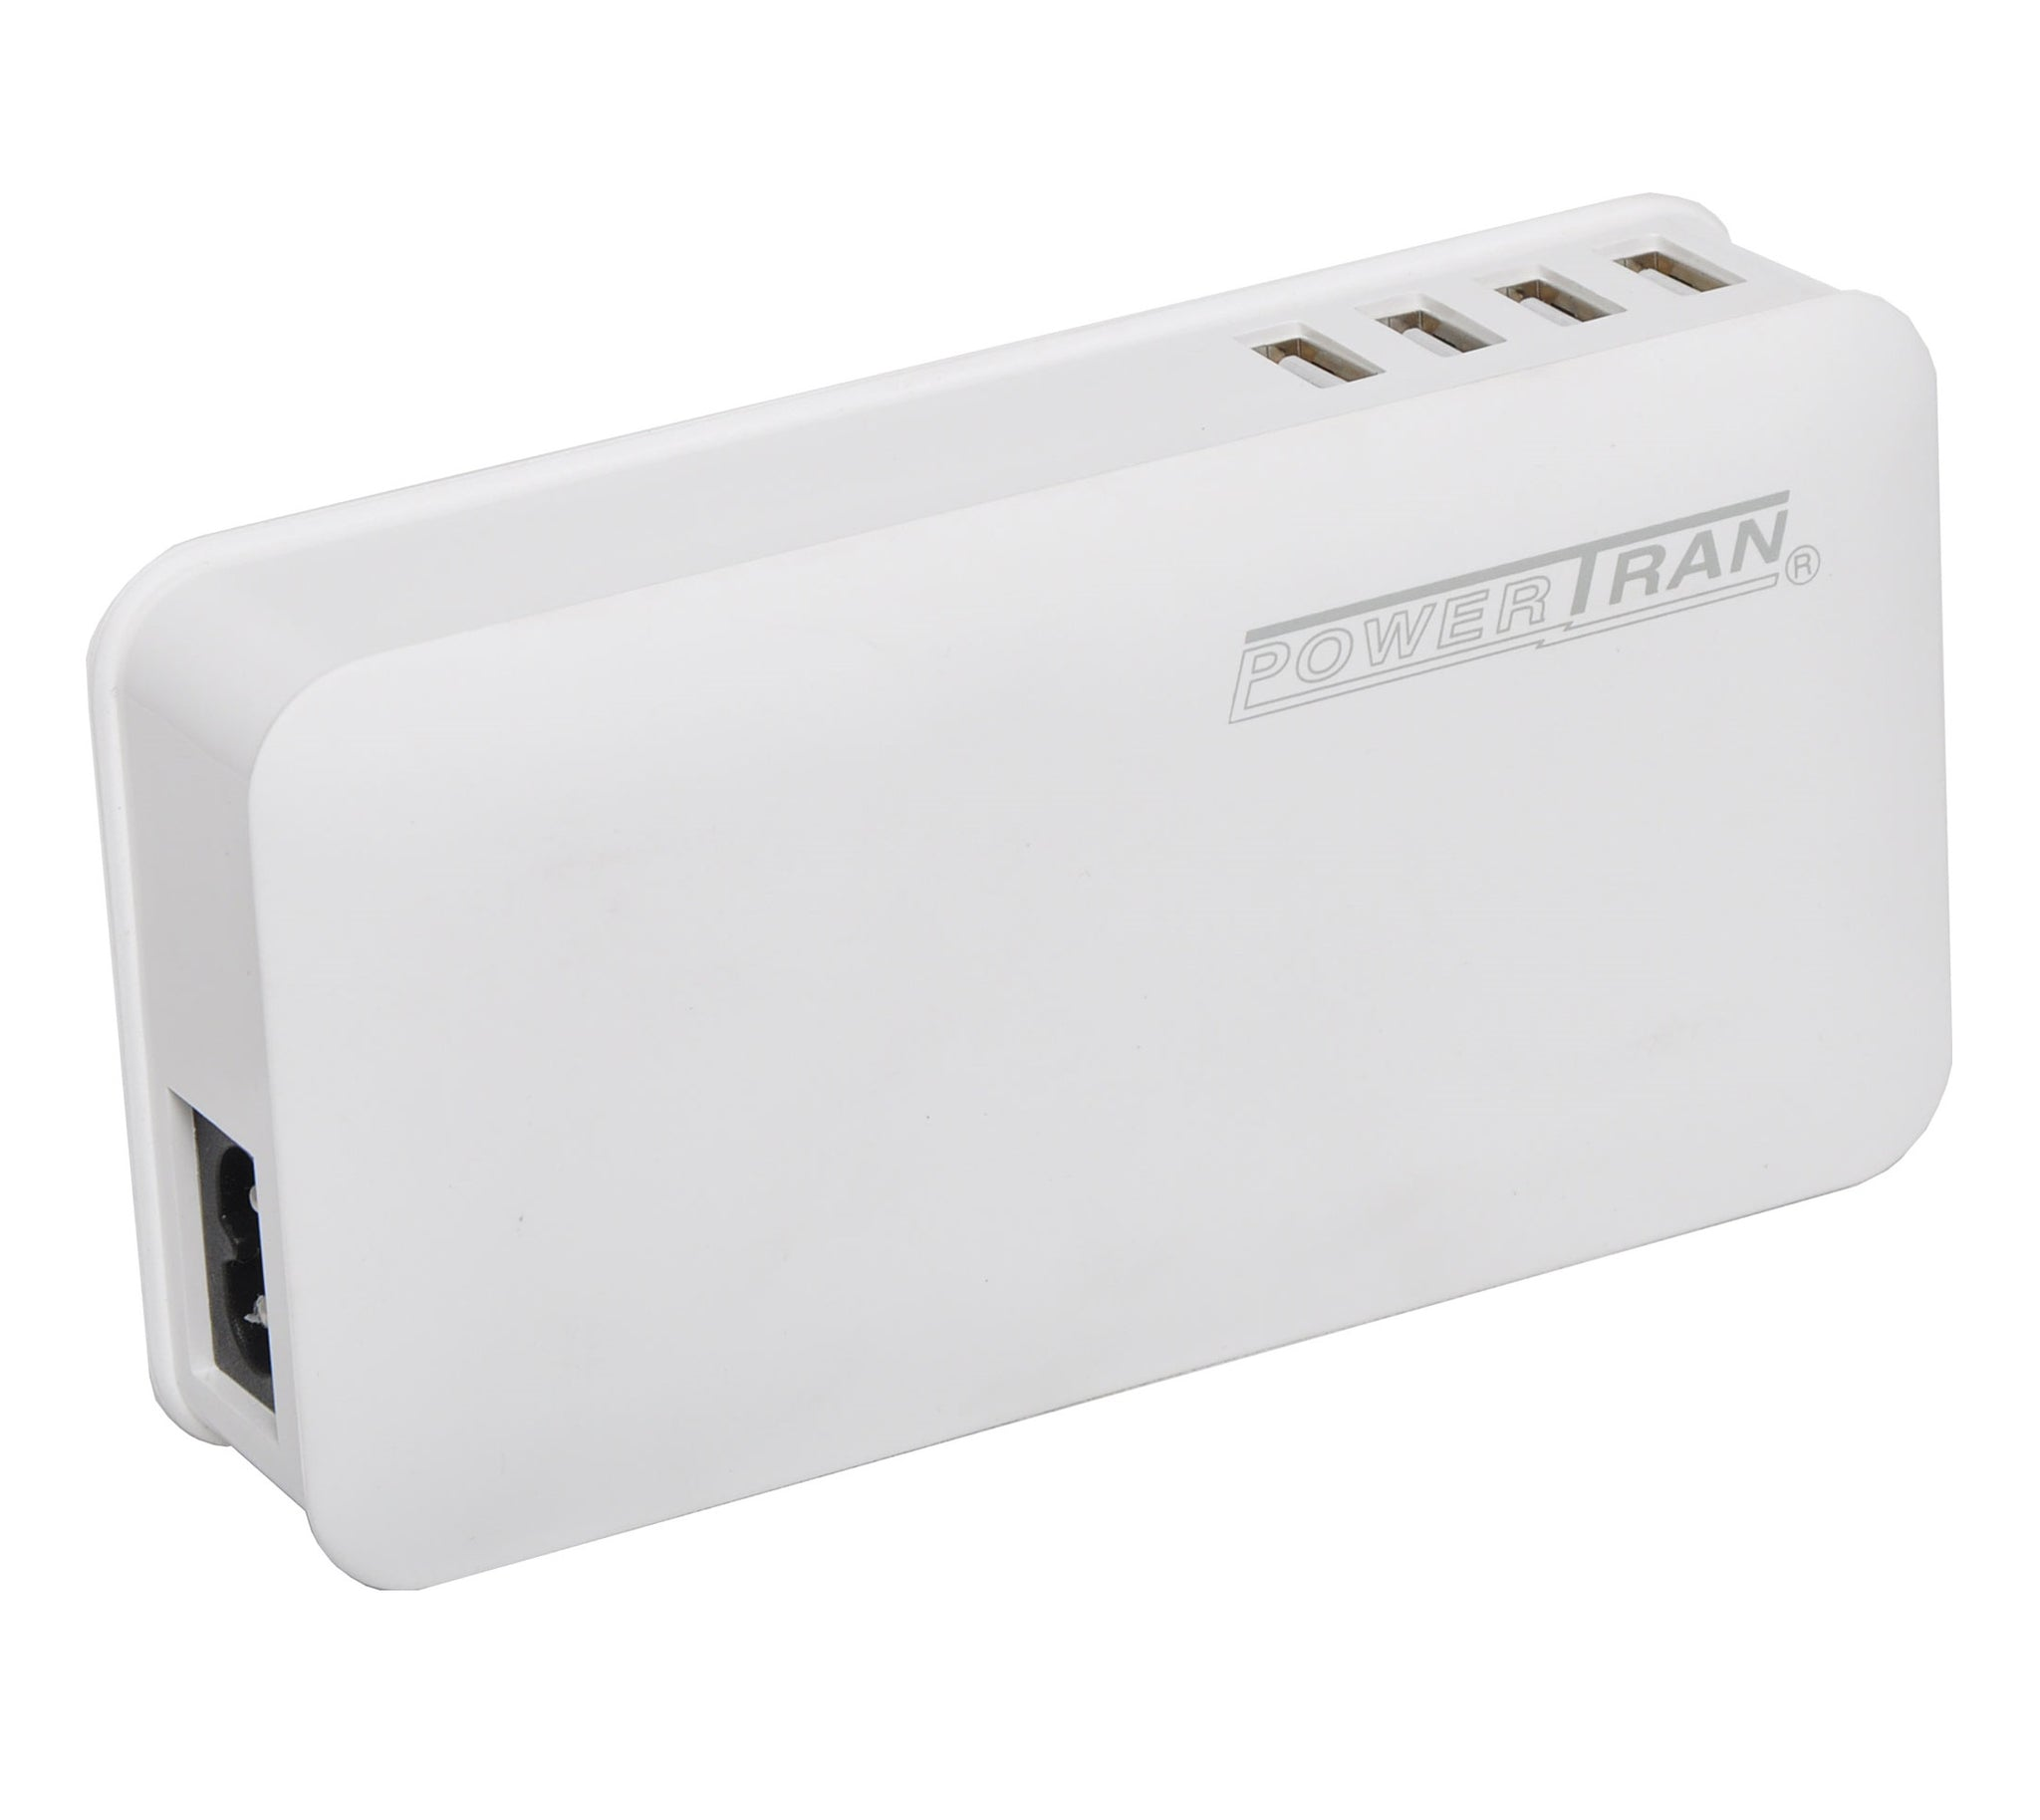 Powertran 8 Output Intelligent 12A High Current USB Charger